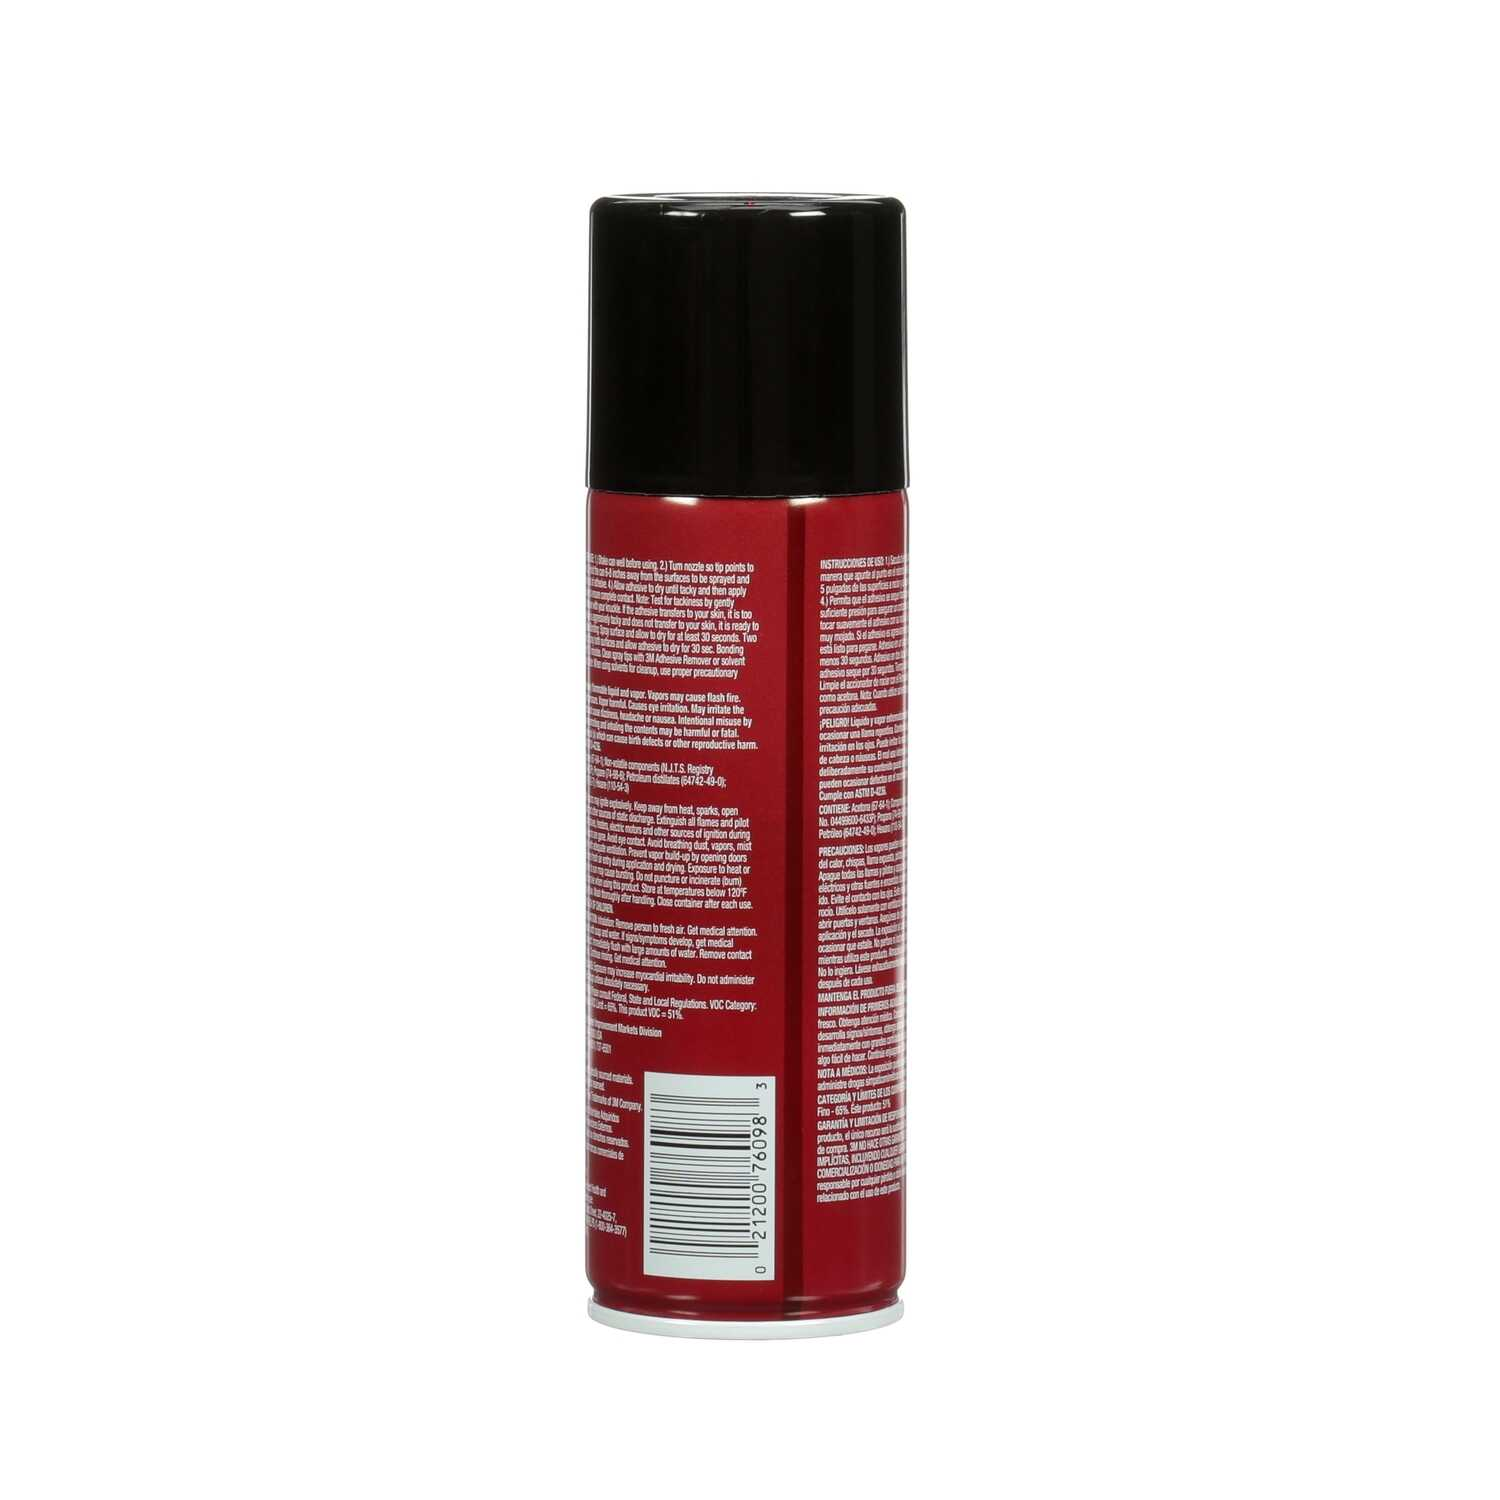 3M Super 77 Medium Strength Synthetic Polymer Adhesive 16 75